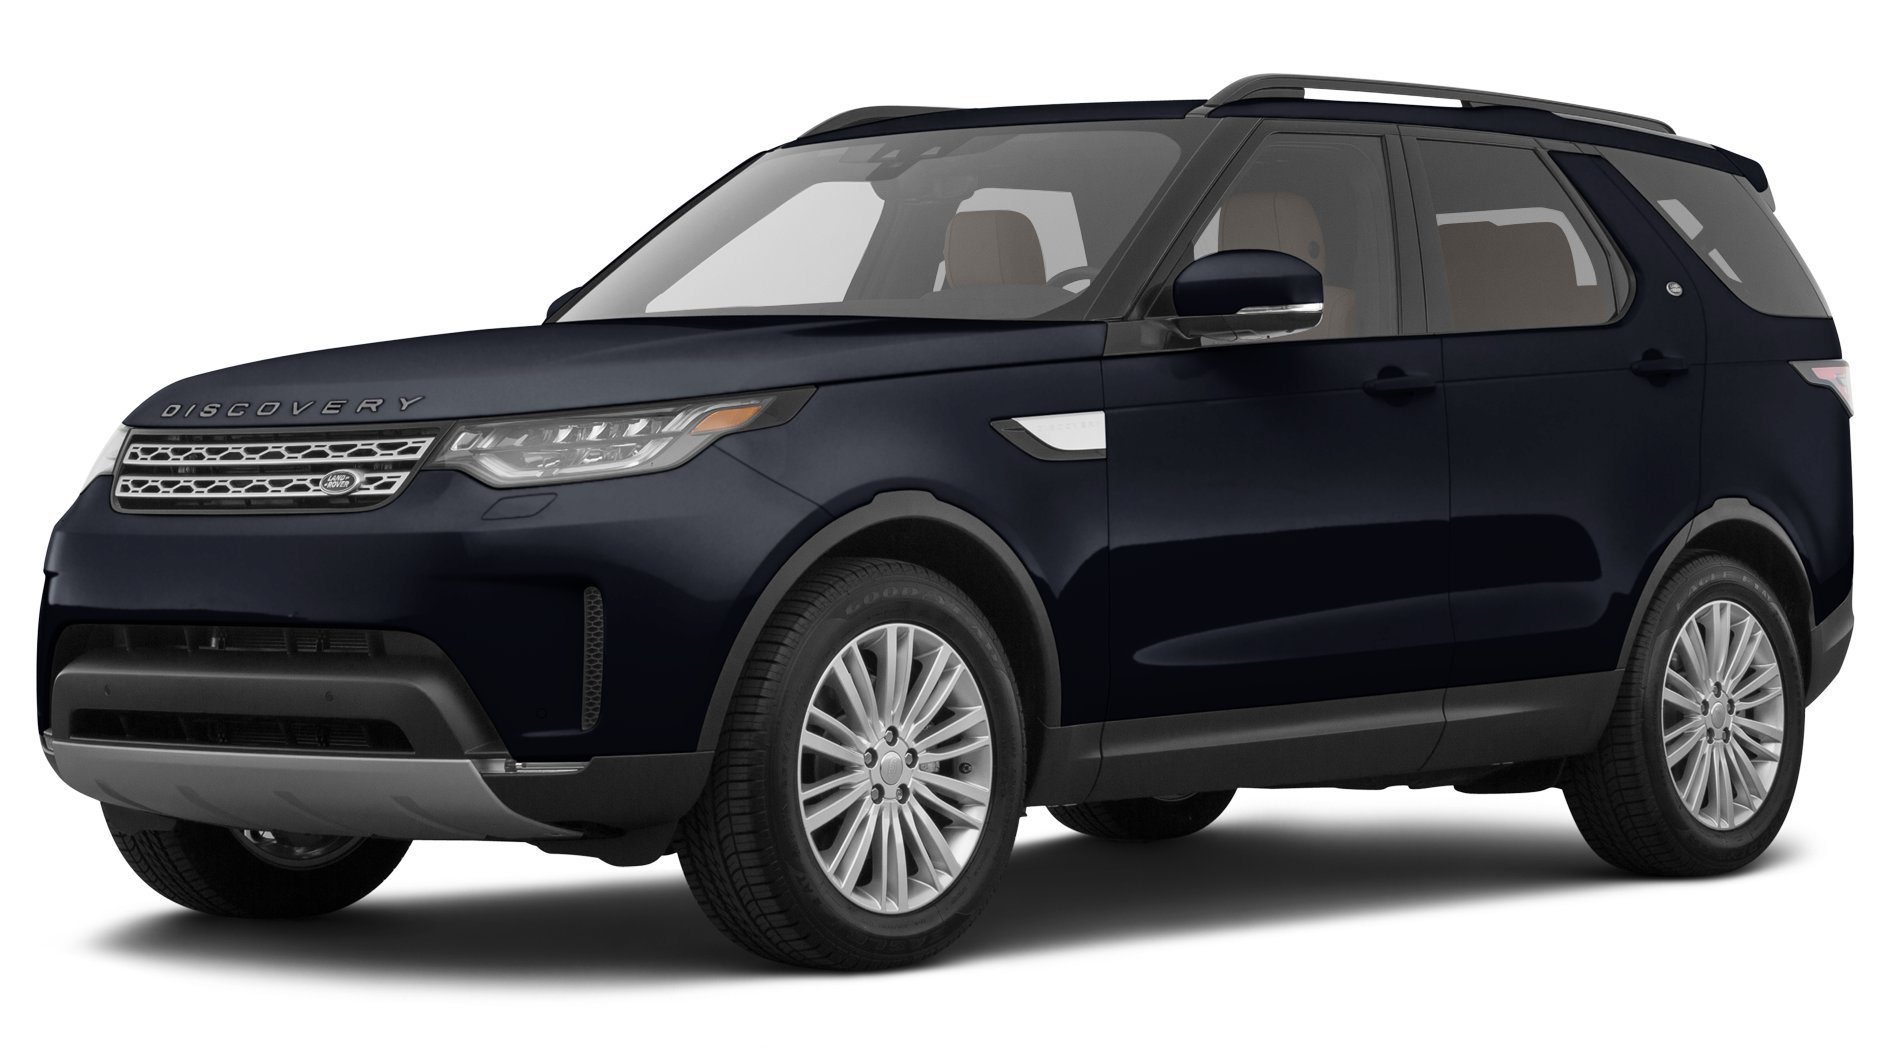 2017 land rover discovery reviews images and specs vehicles. Black Bedroom Furniture Sets. Home Design Ideas